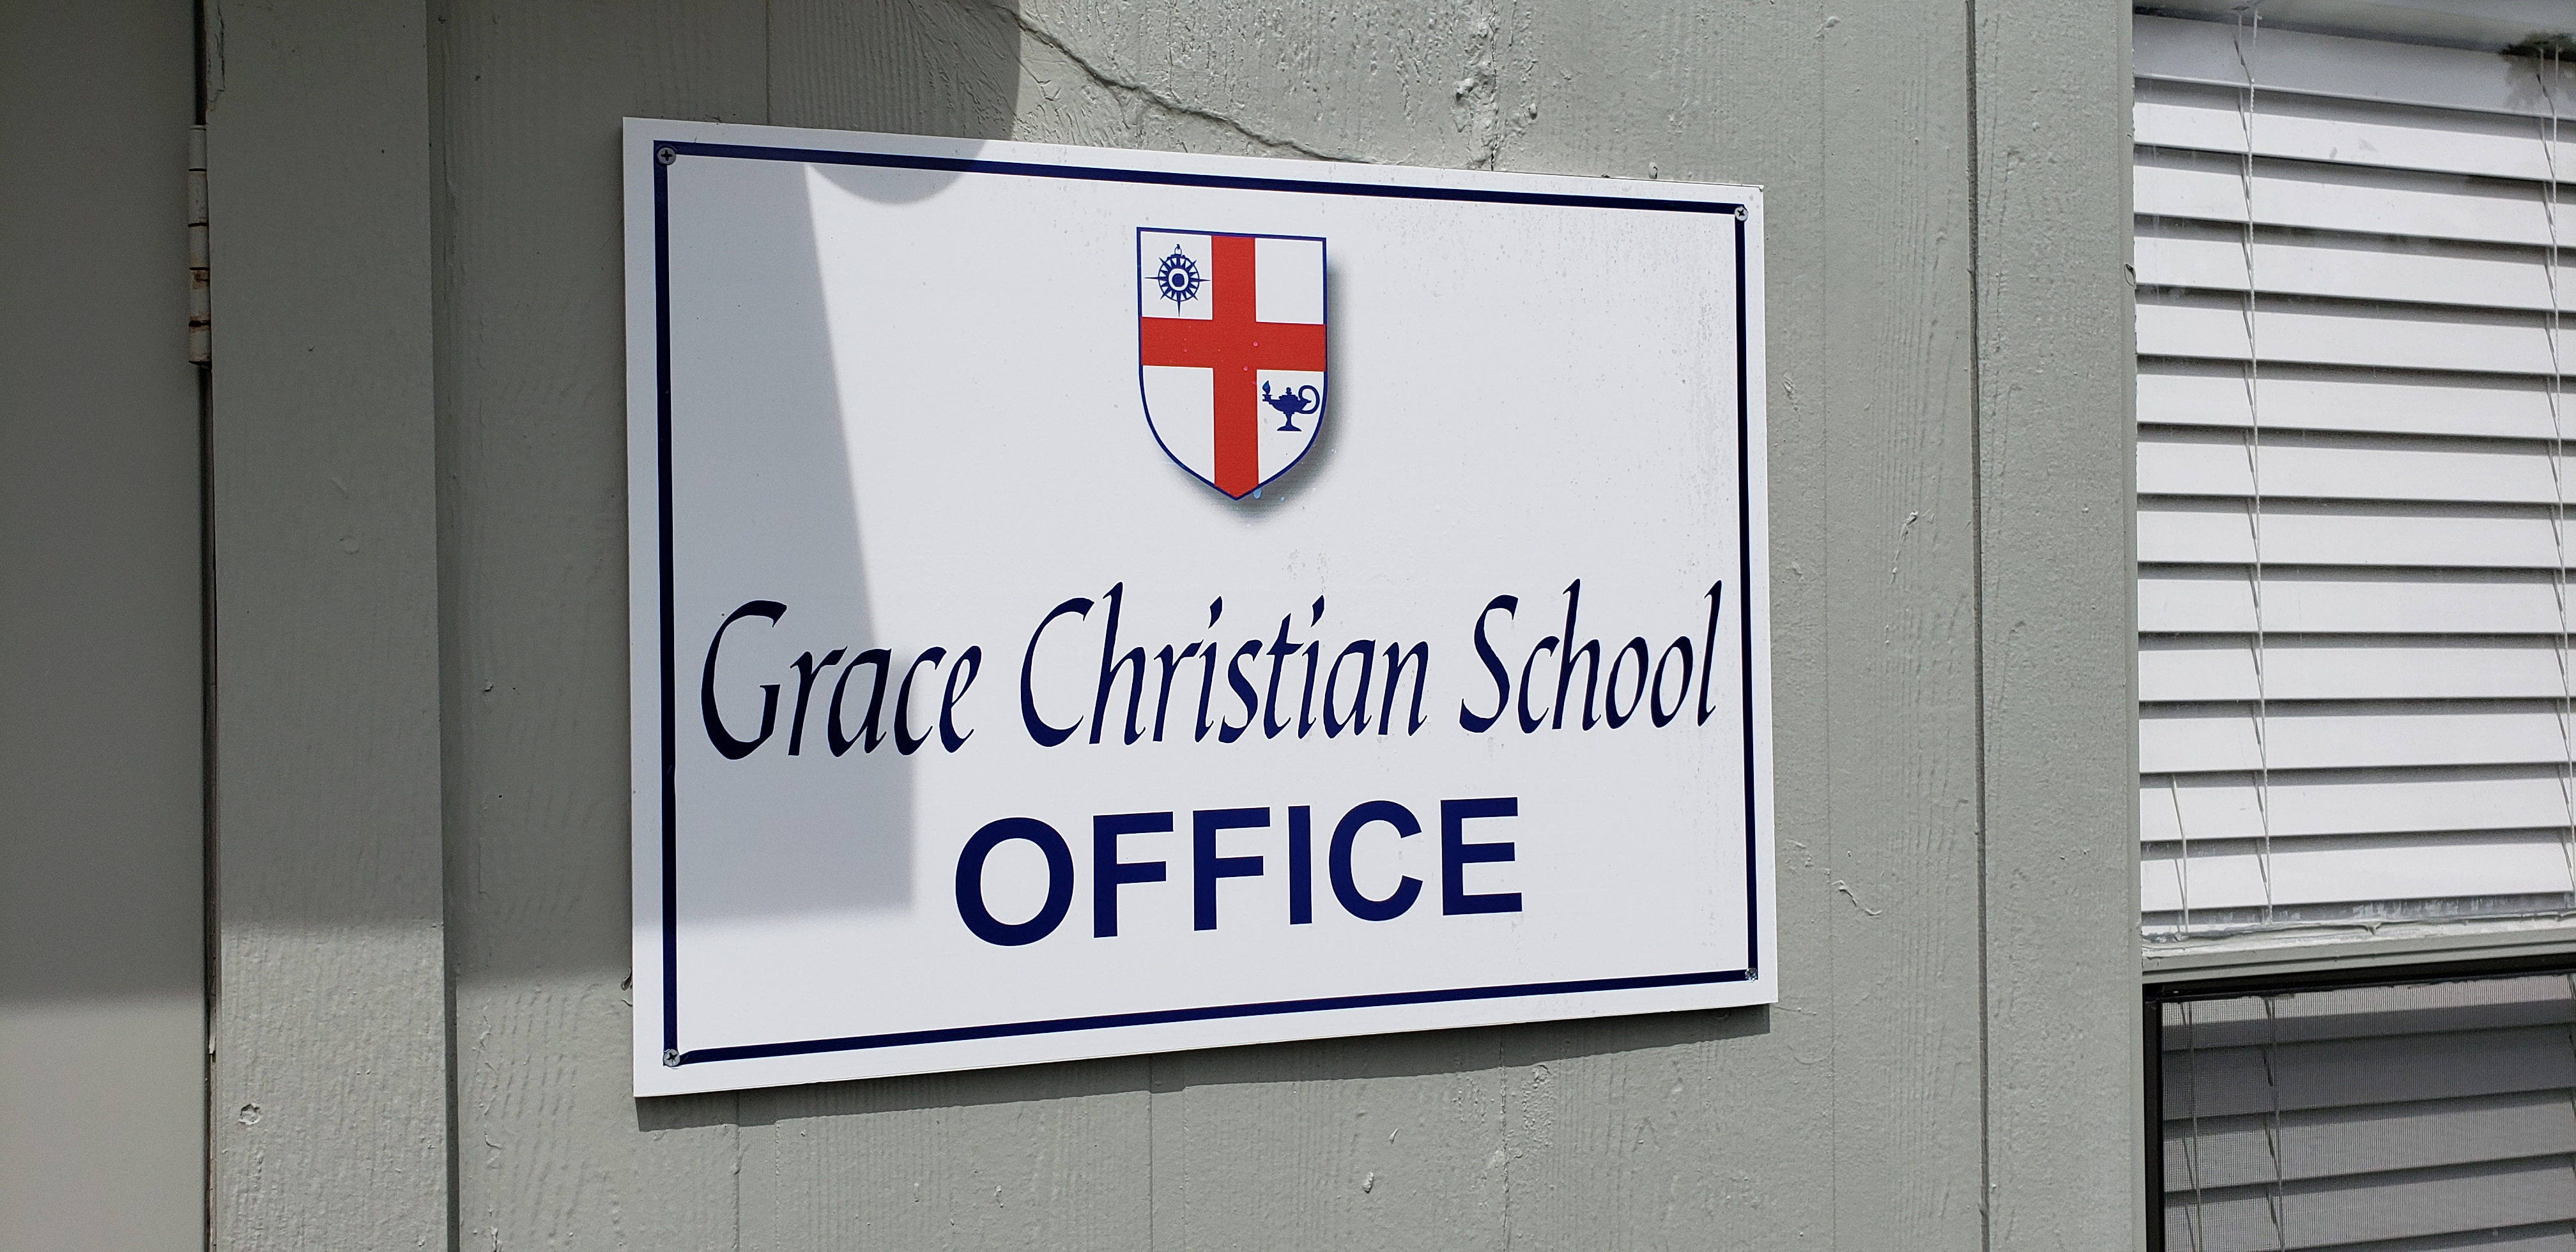 08-02-2019 Grace Christian School